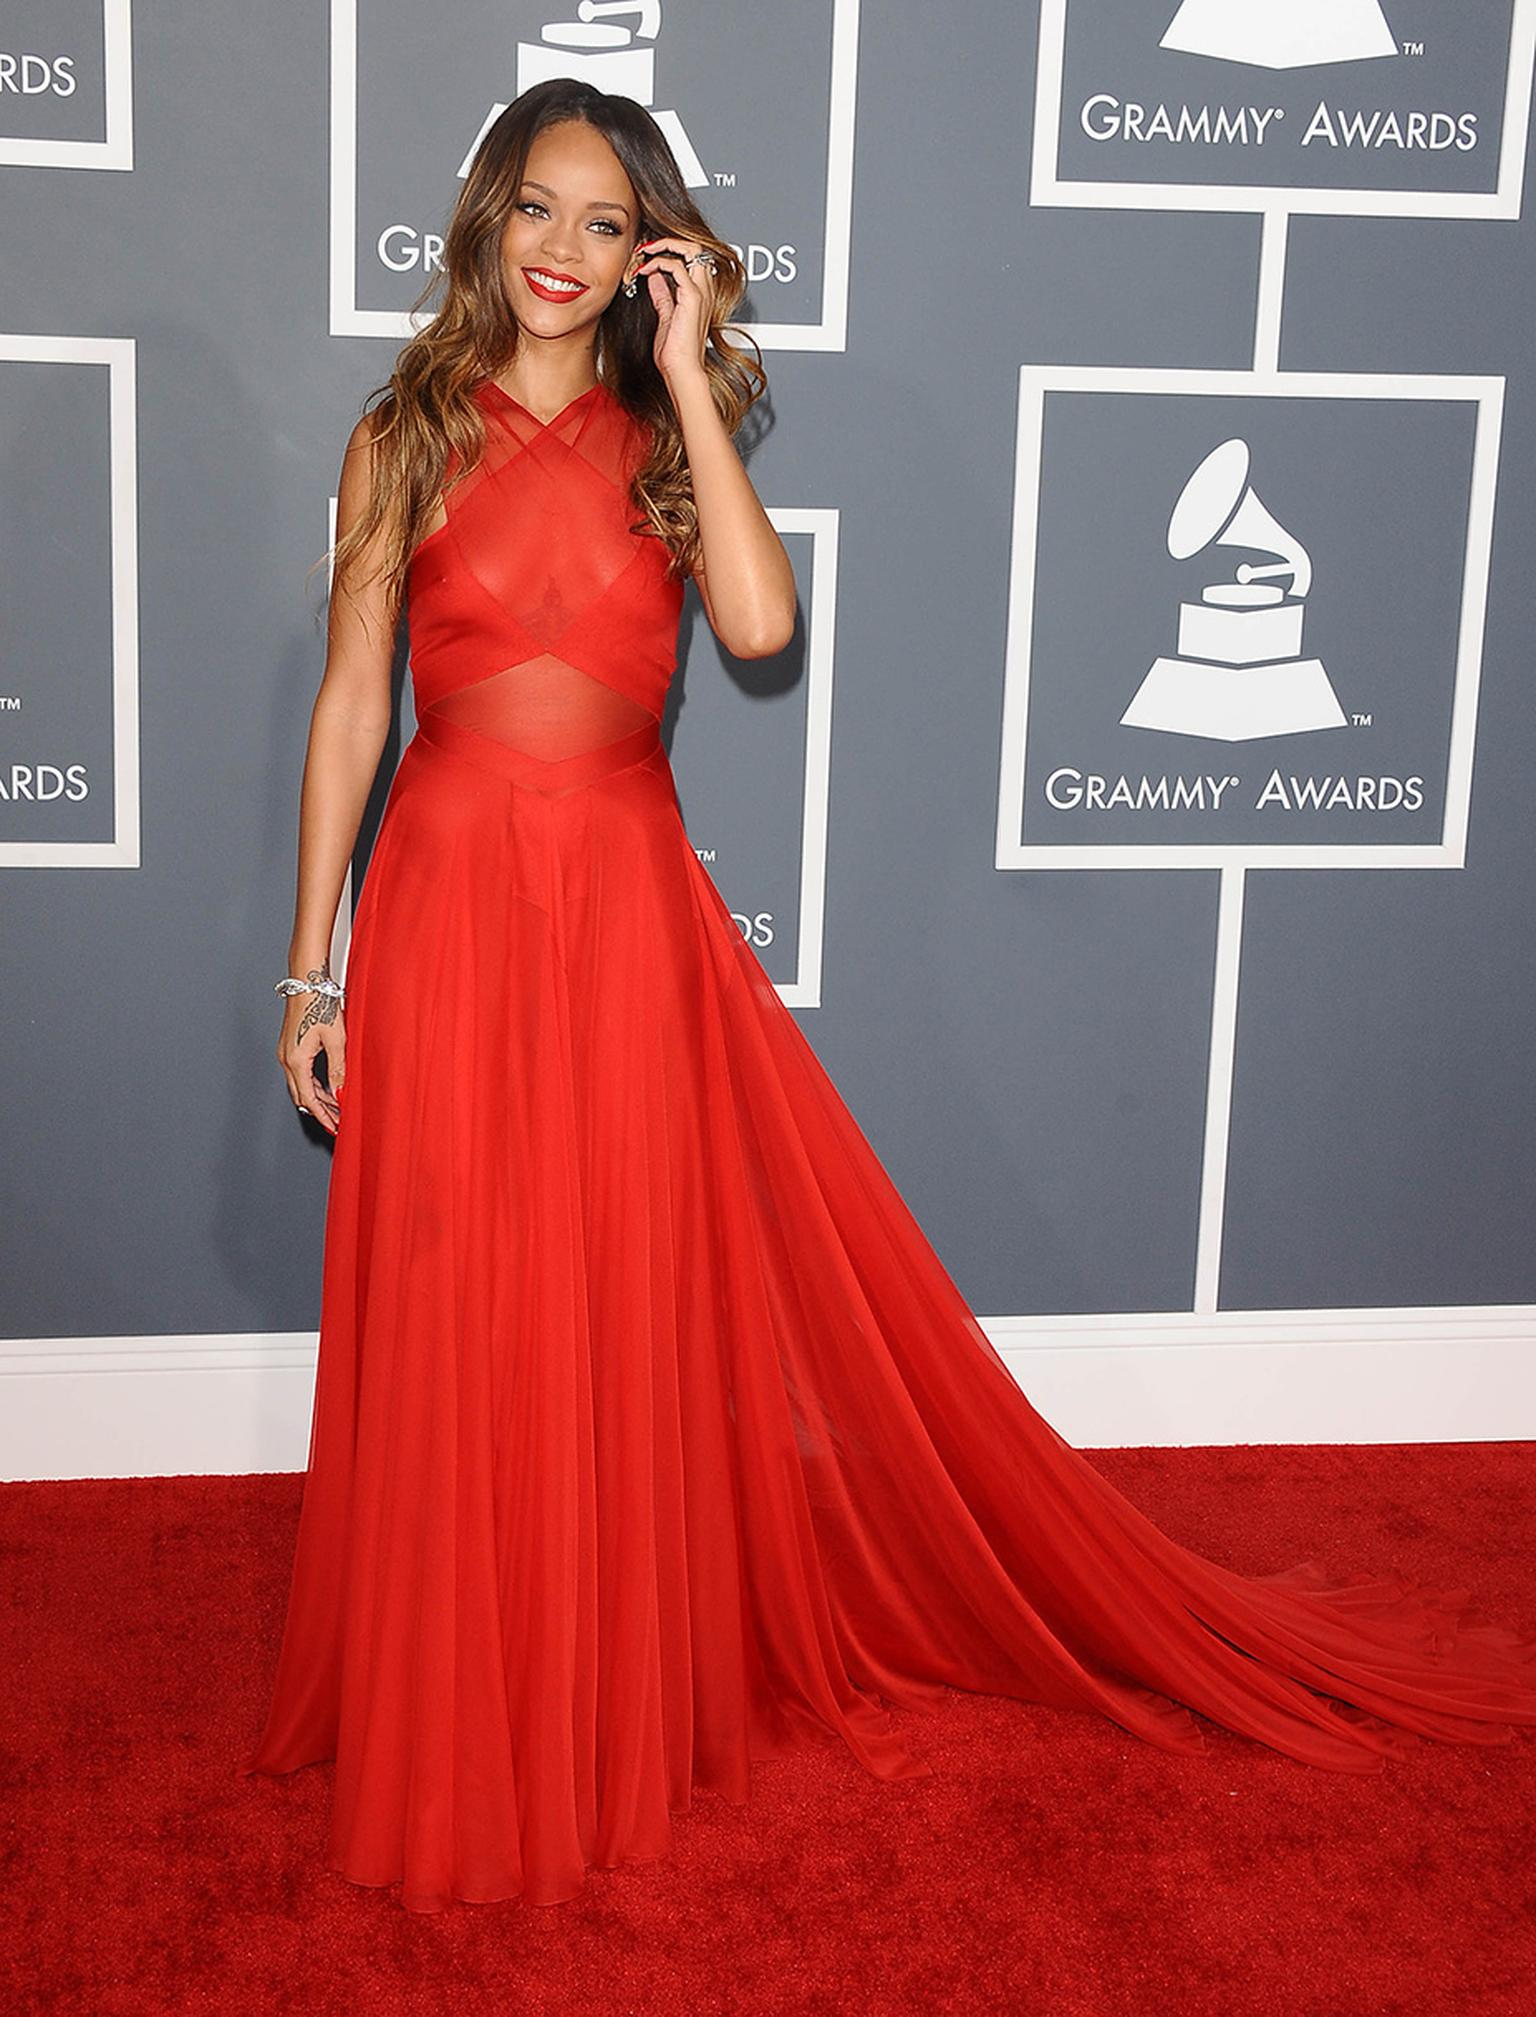 Rihanna topped the best-dressed polls at the Grammys 2013 in more than US$2 million of Neil Lane jewels